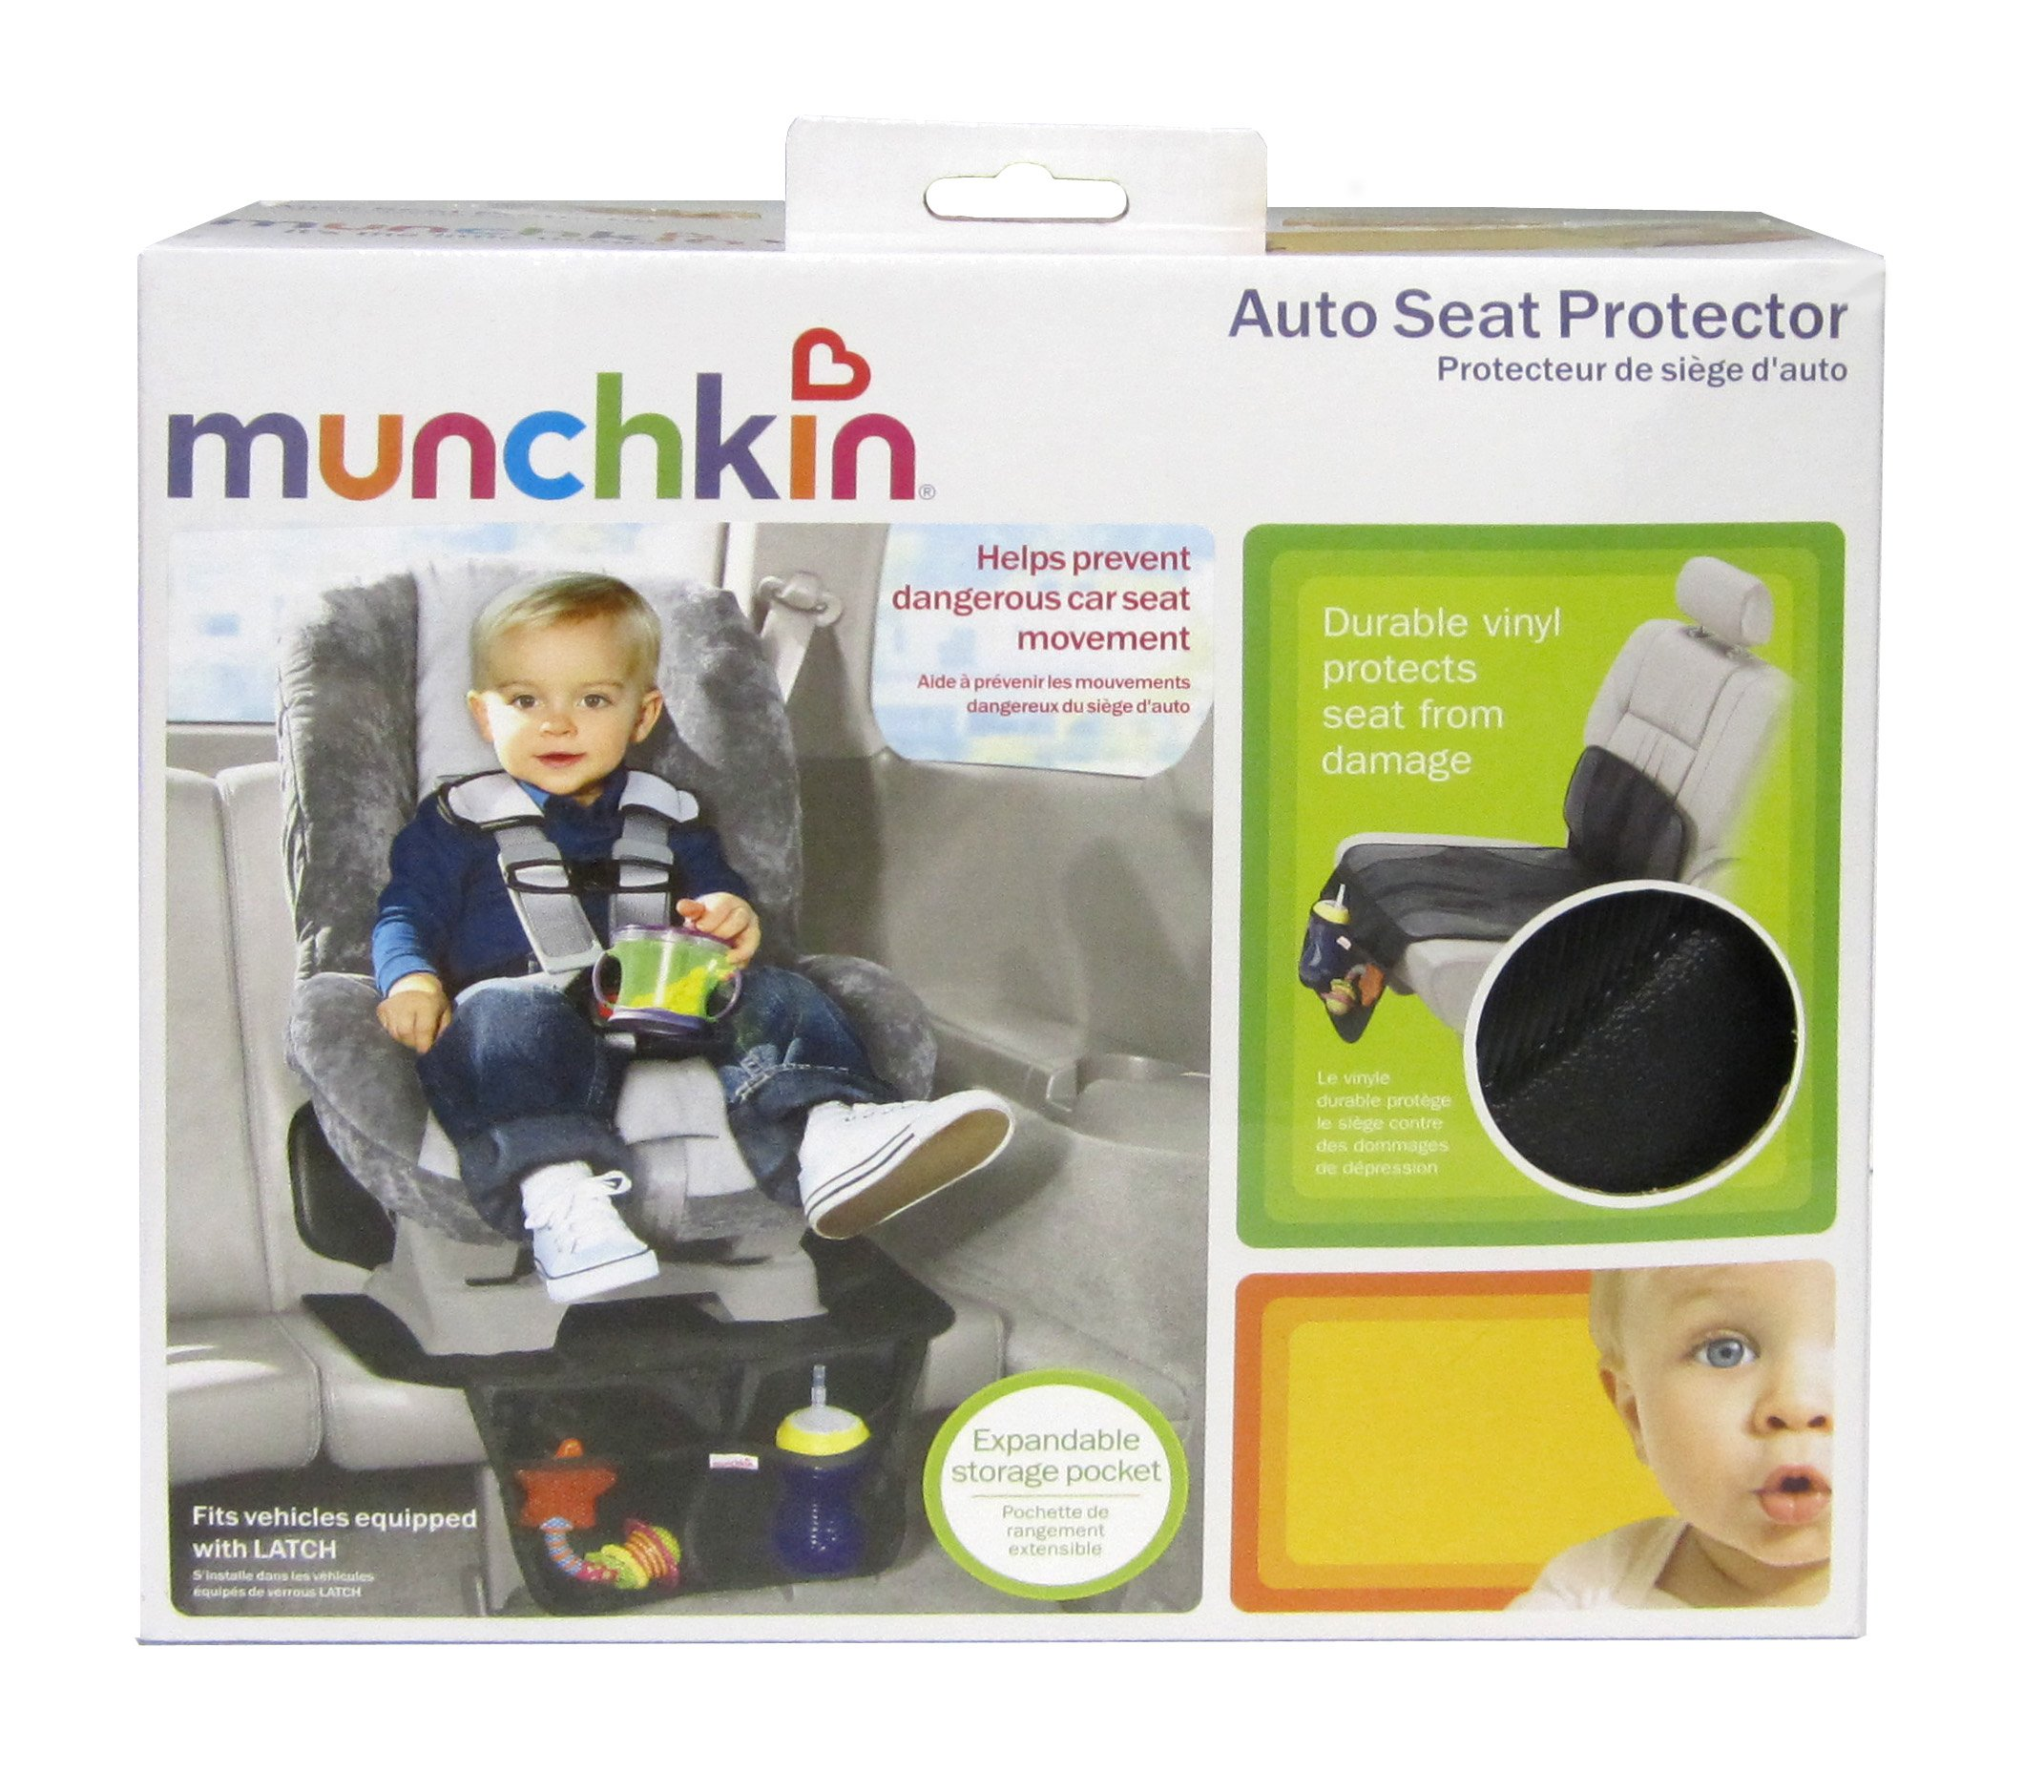 Munchkin Auto Seat Protector, 1 Count by Munchkin (Image #6)